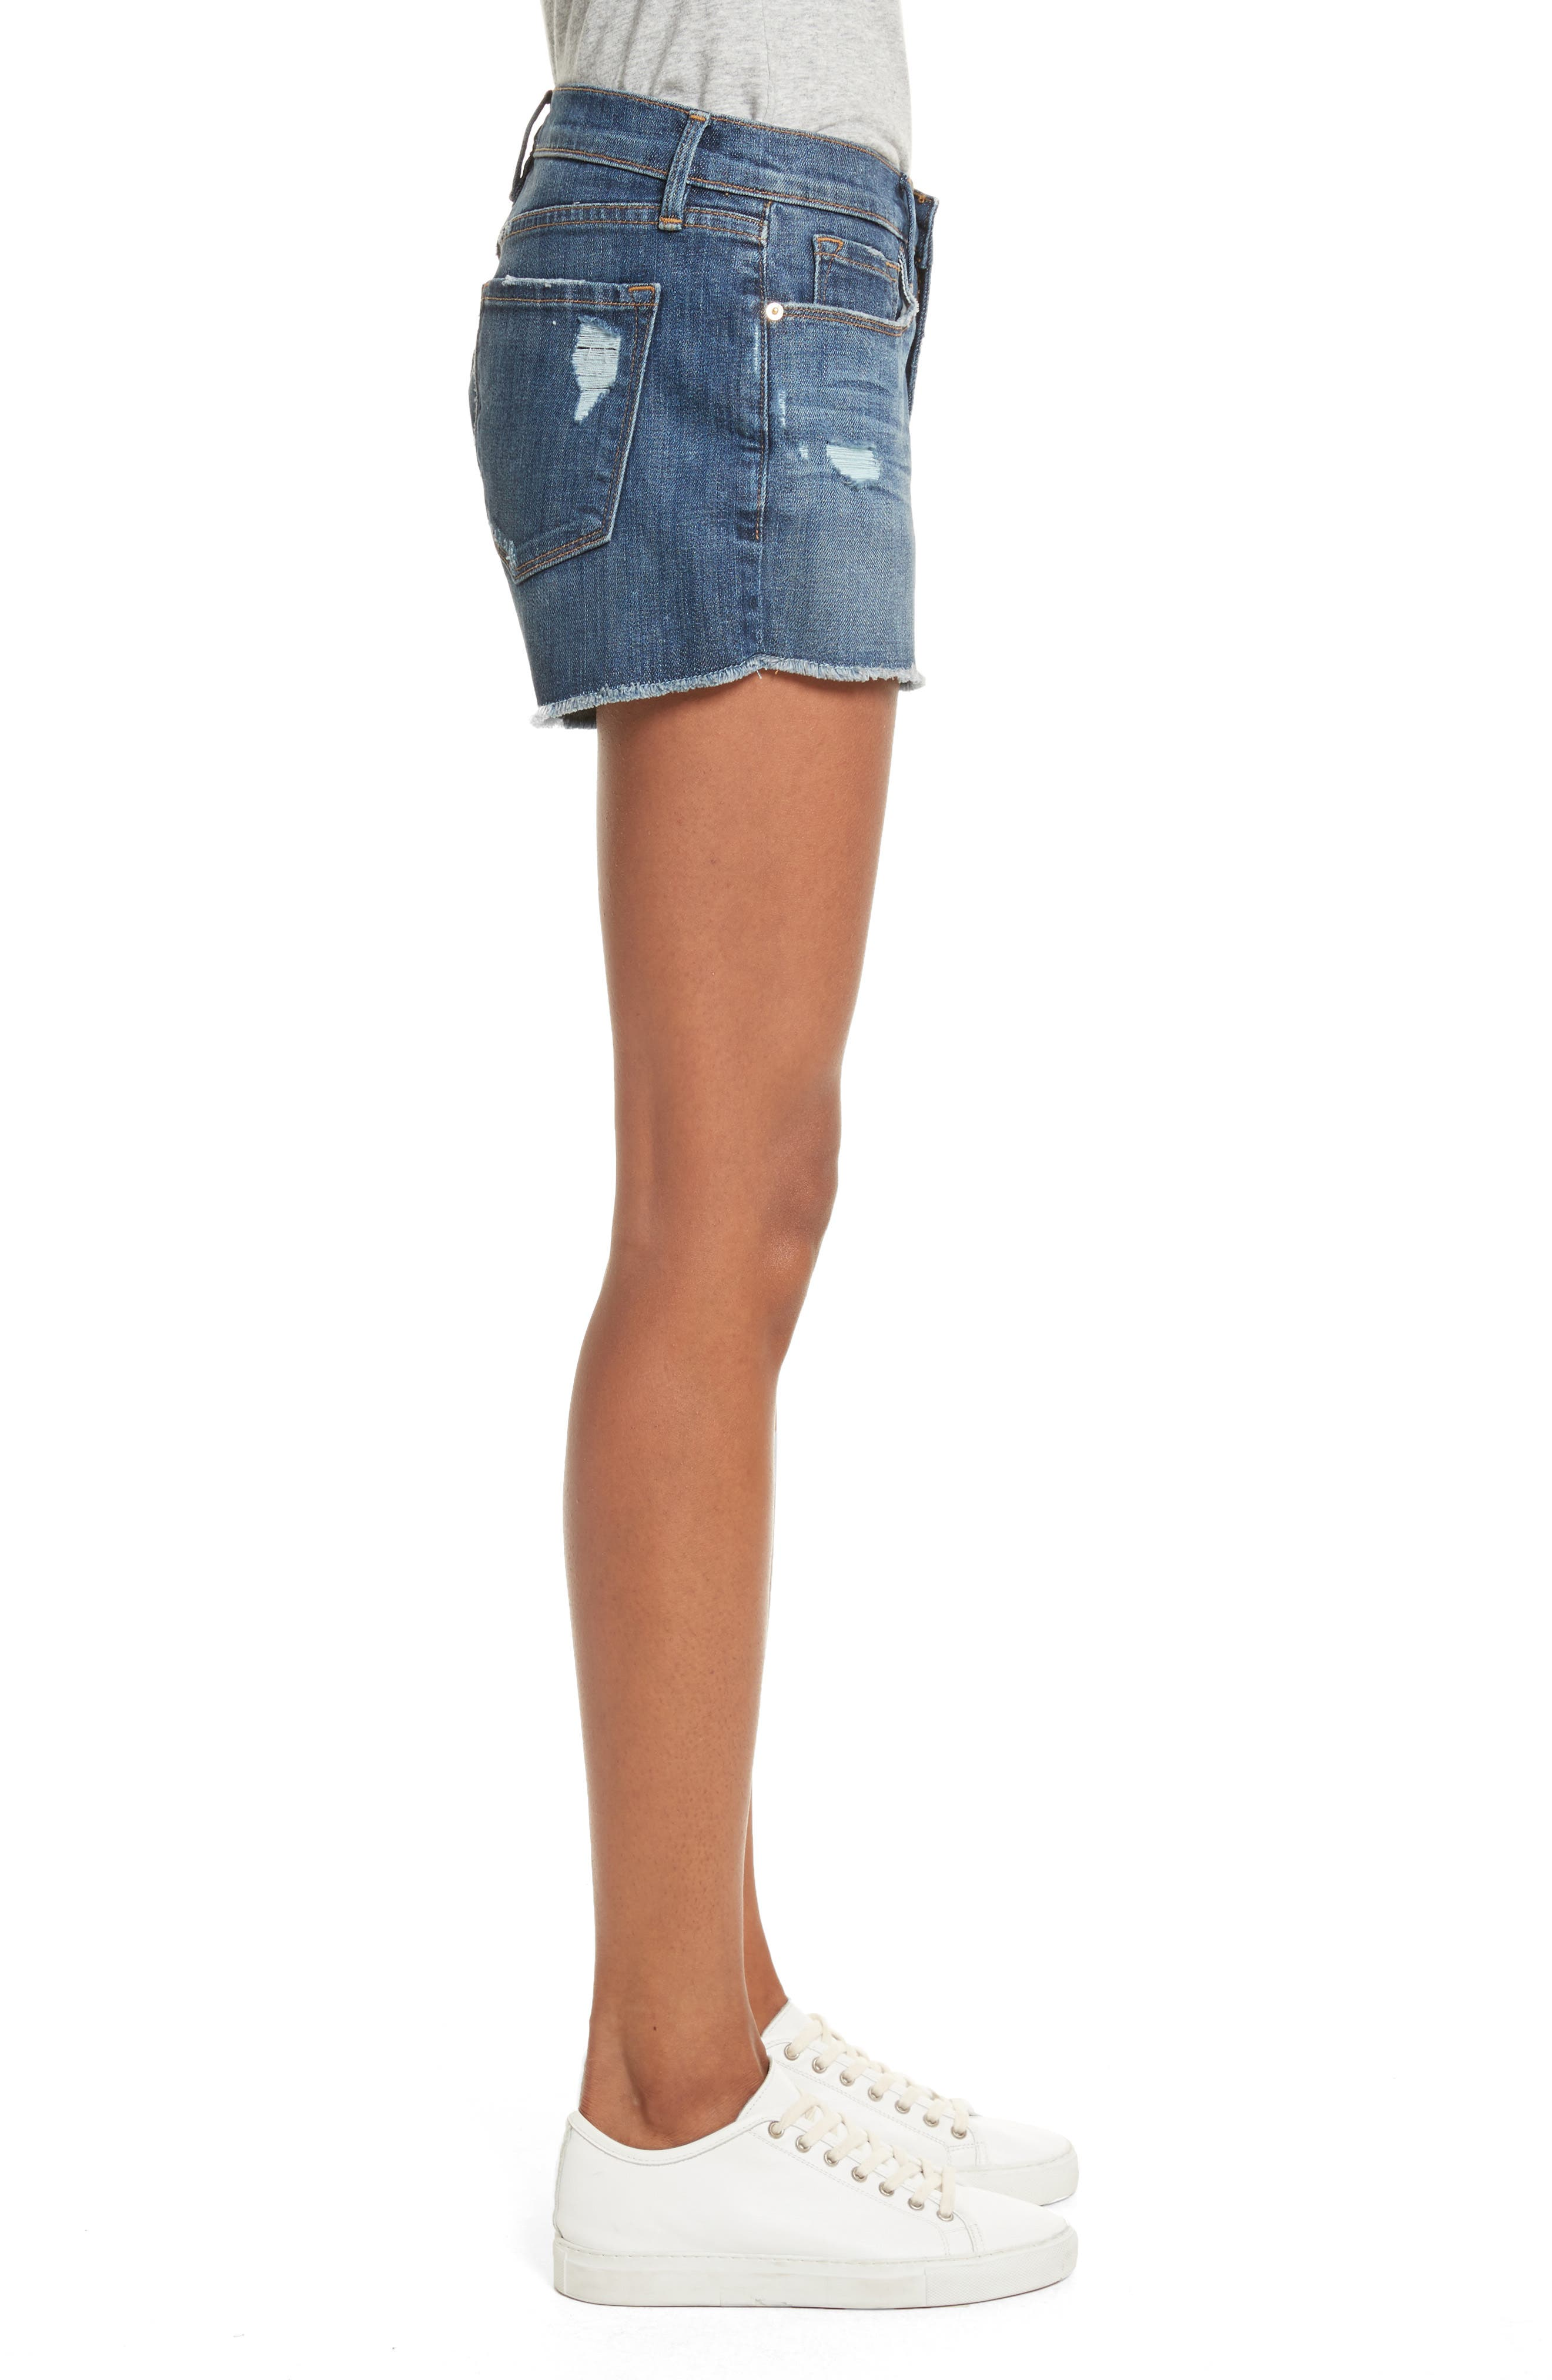 Le Cutoff Denim Shorts,                             Alternate thumbnail 4, color,                             Eckford